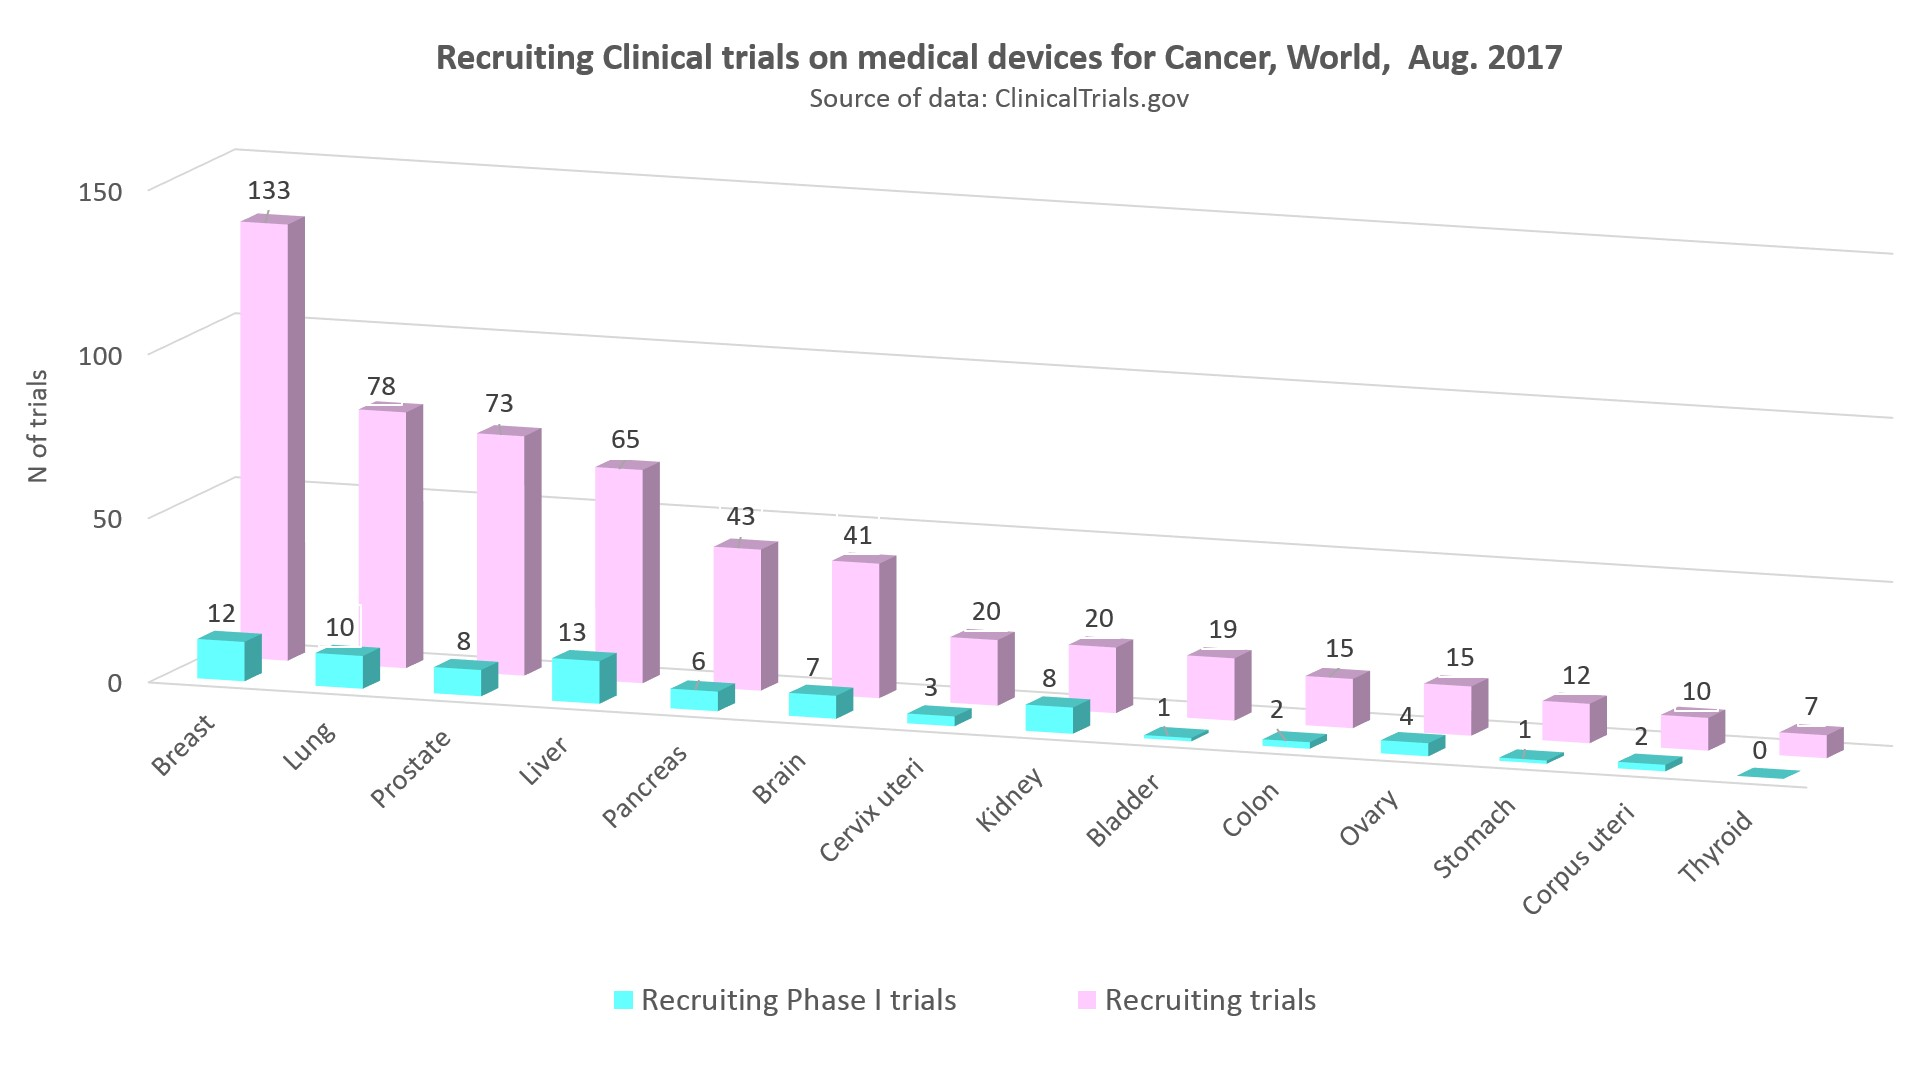 recruiting clinical trials on medical devices for cancer worldwide, August 2017